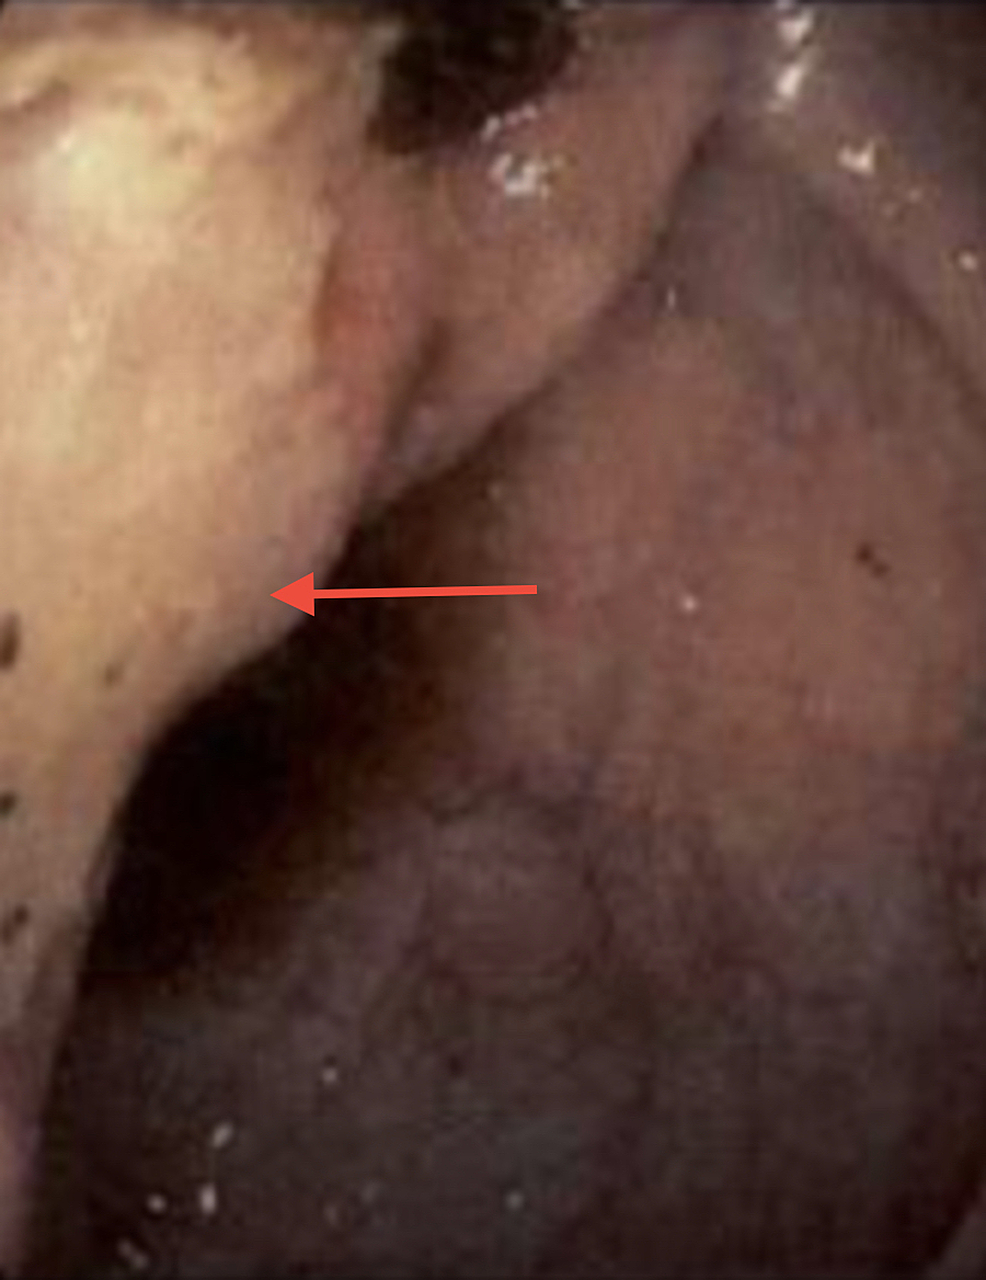 Endoscopic-view-revealing-ulcerated-mucosa-and-edema-at-the-ileocecal-valve.